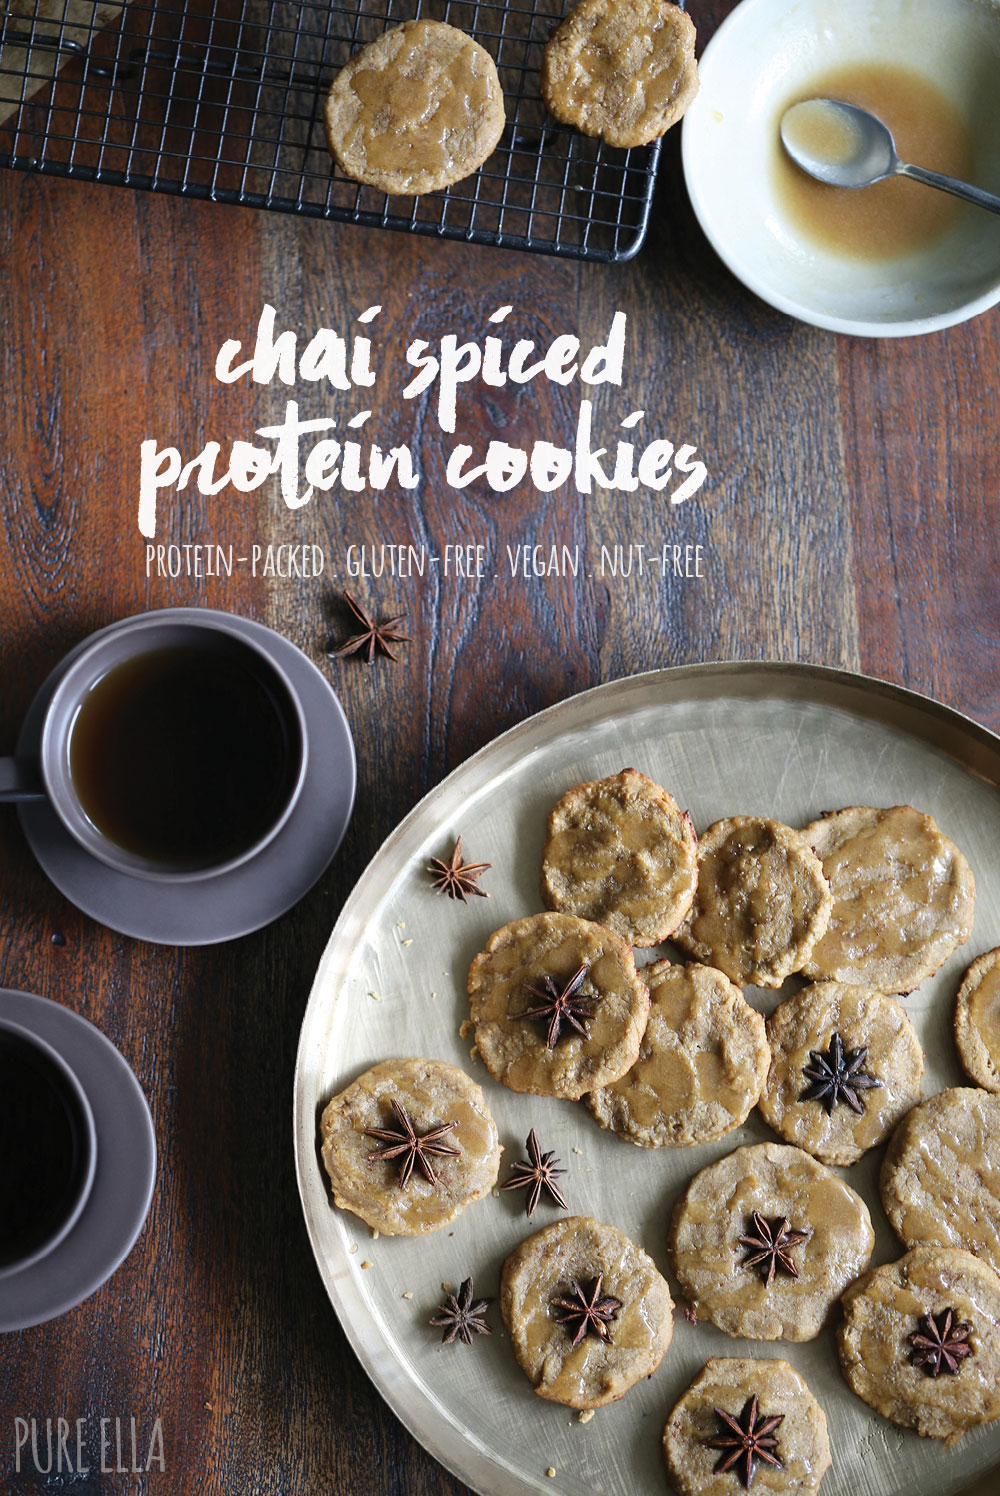 chai-spiced-chickpea-cookies-deliciously-ella-pure-ella-leche5